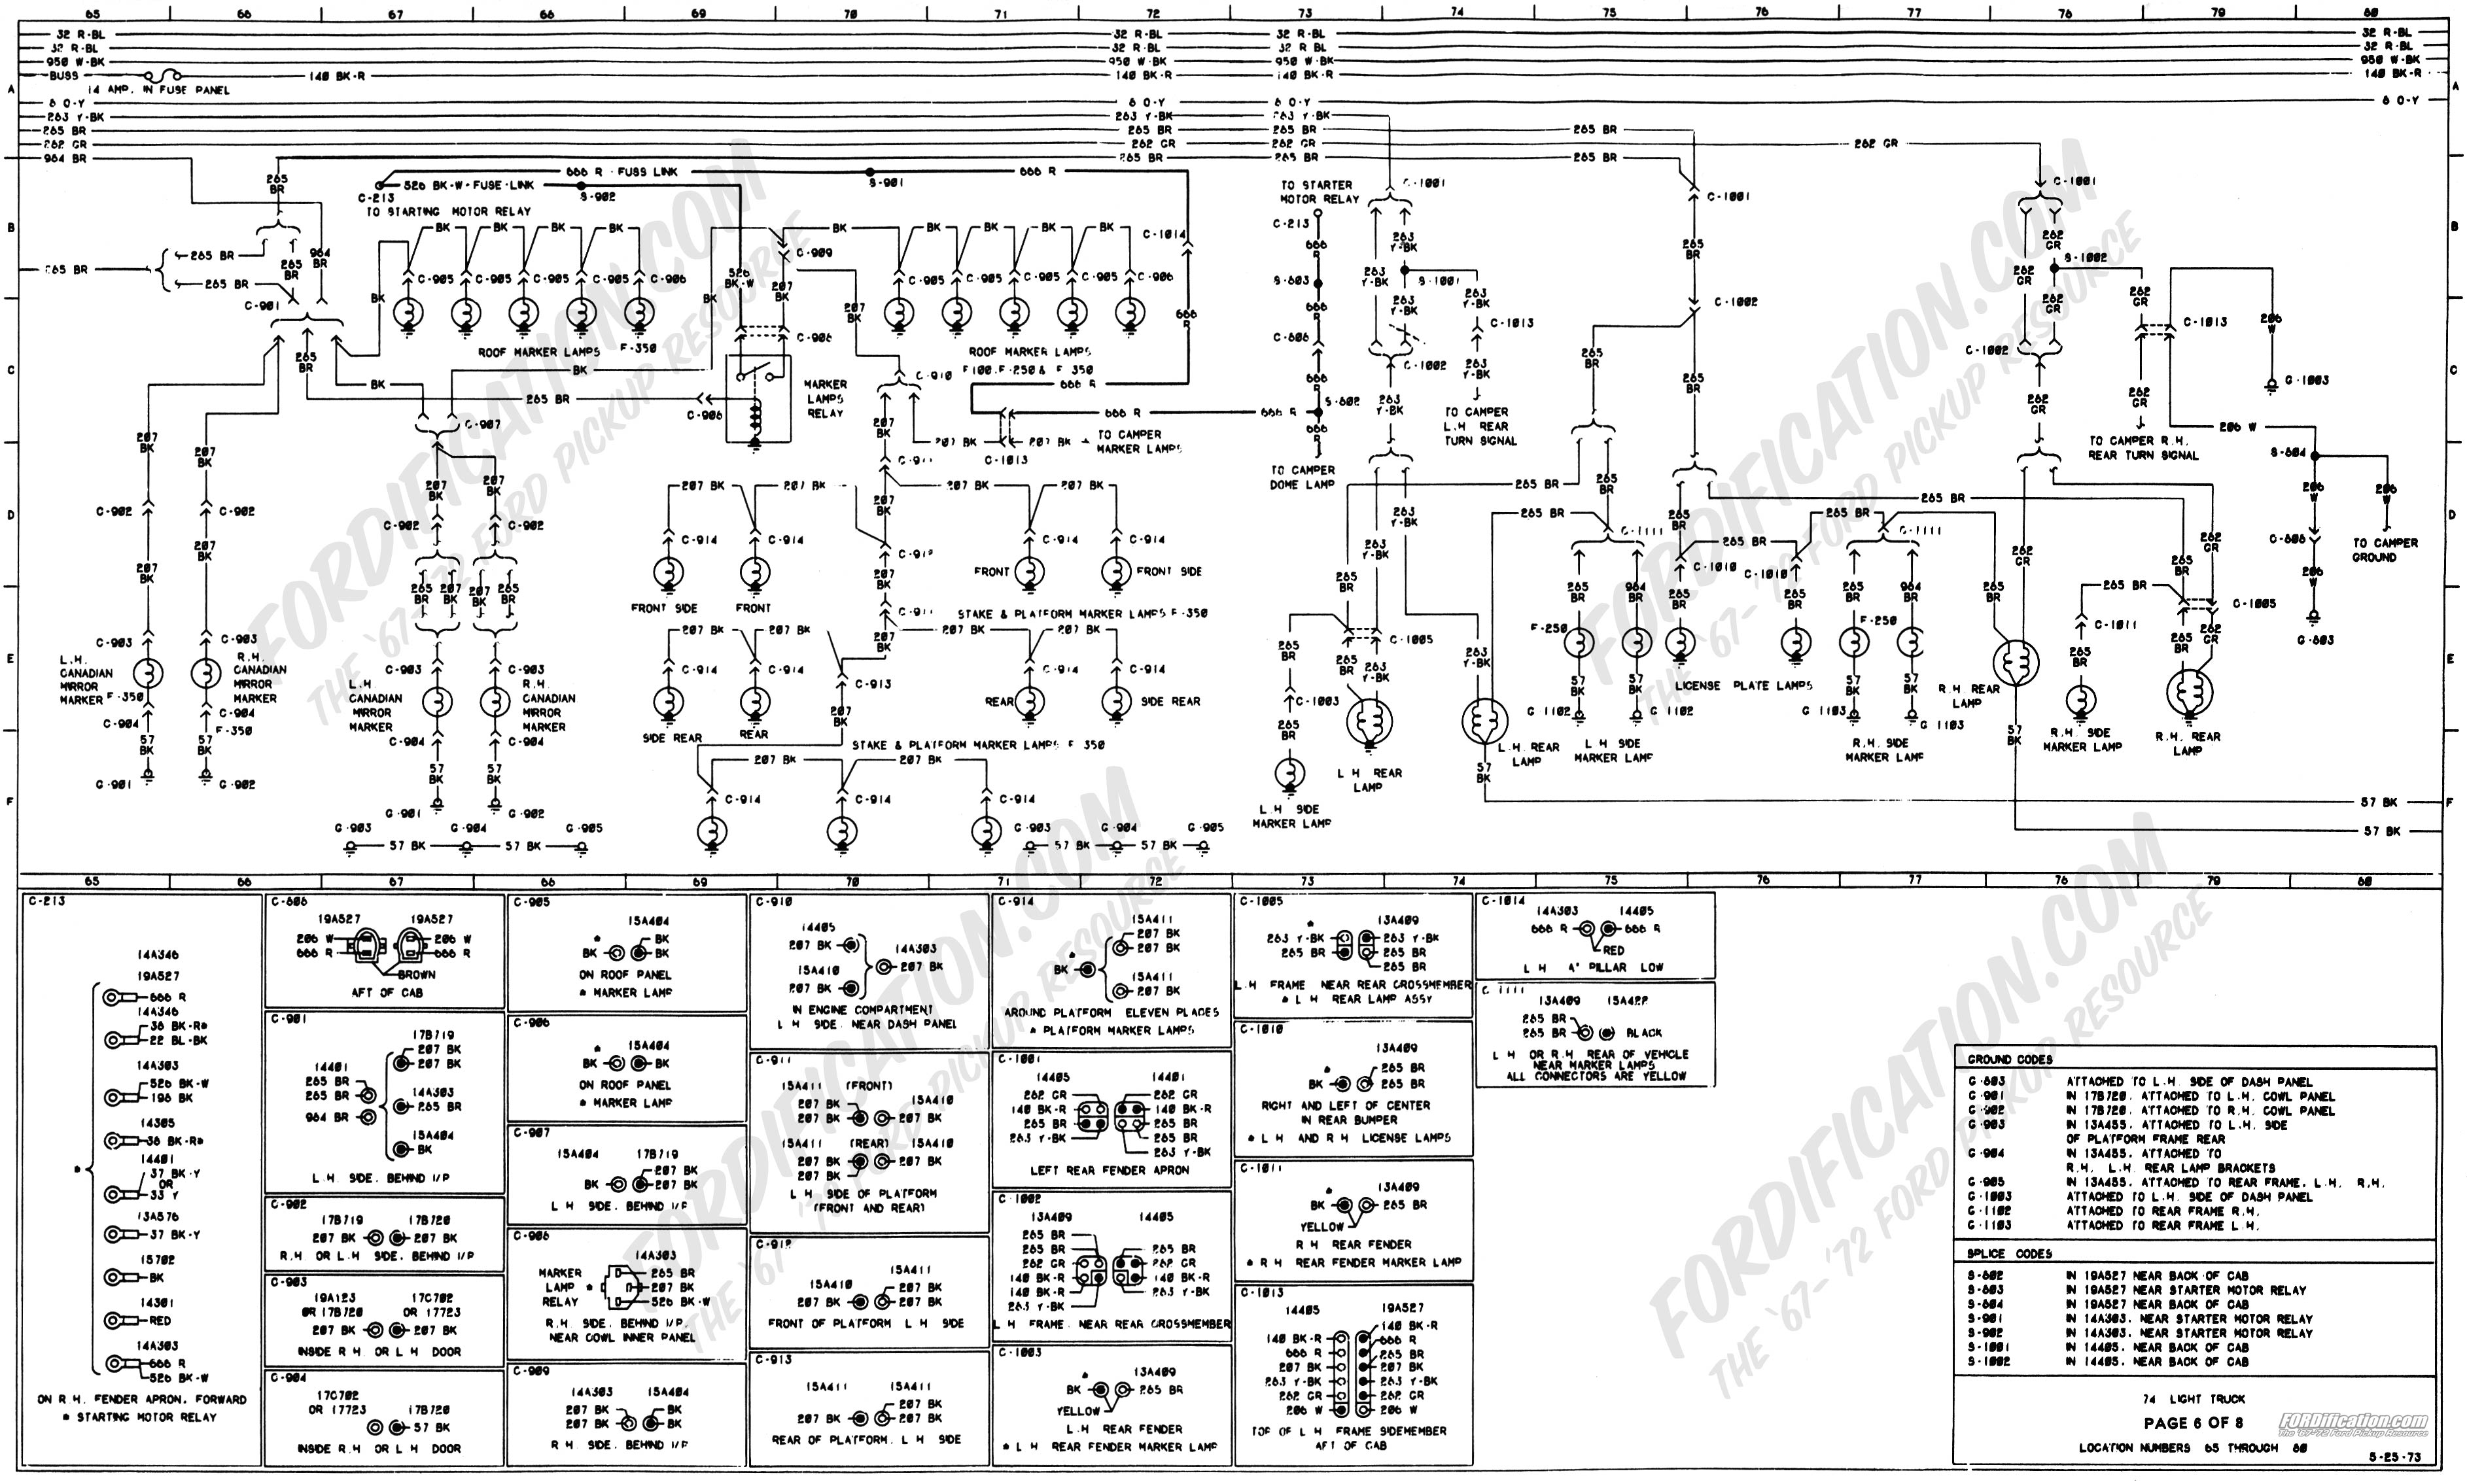 wiring_74master_6of8 1973 1979 ford truck wiring diagrams & schematics fordification net 1999 f250 trailer wiring diagram at webbmarketing.co